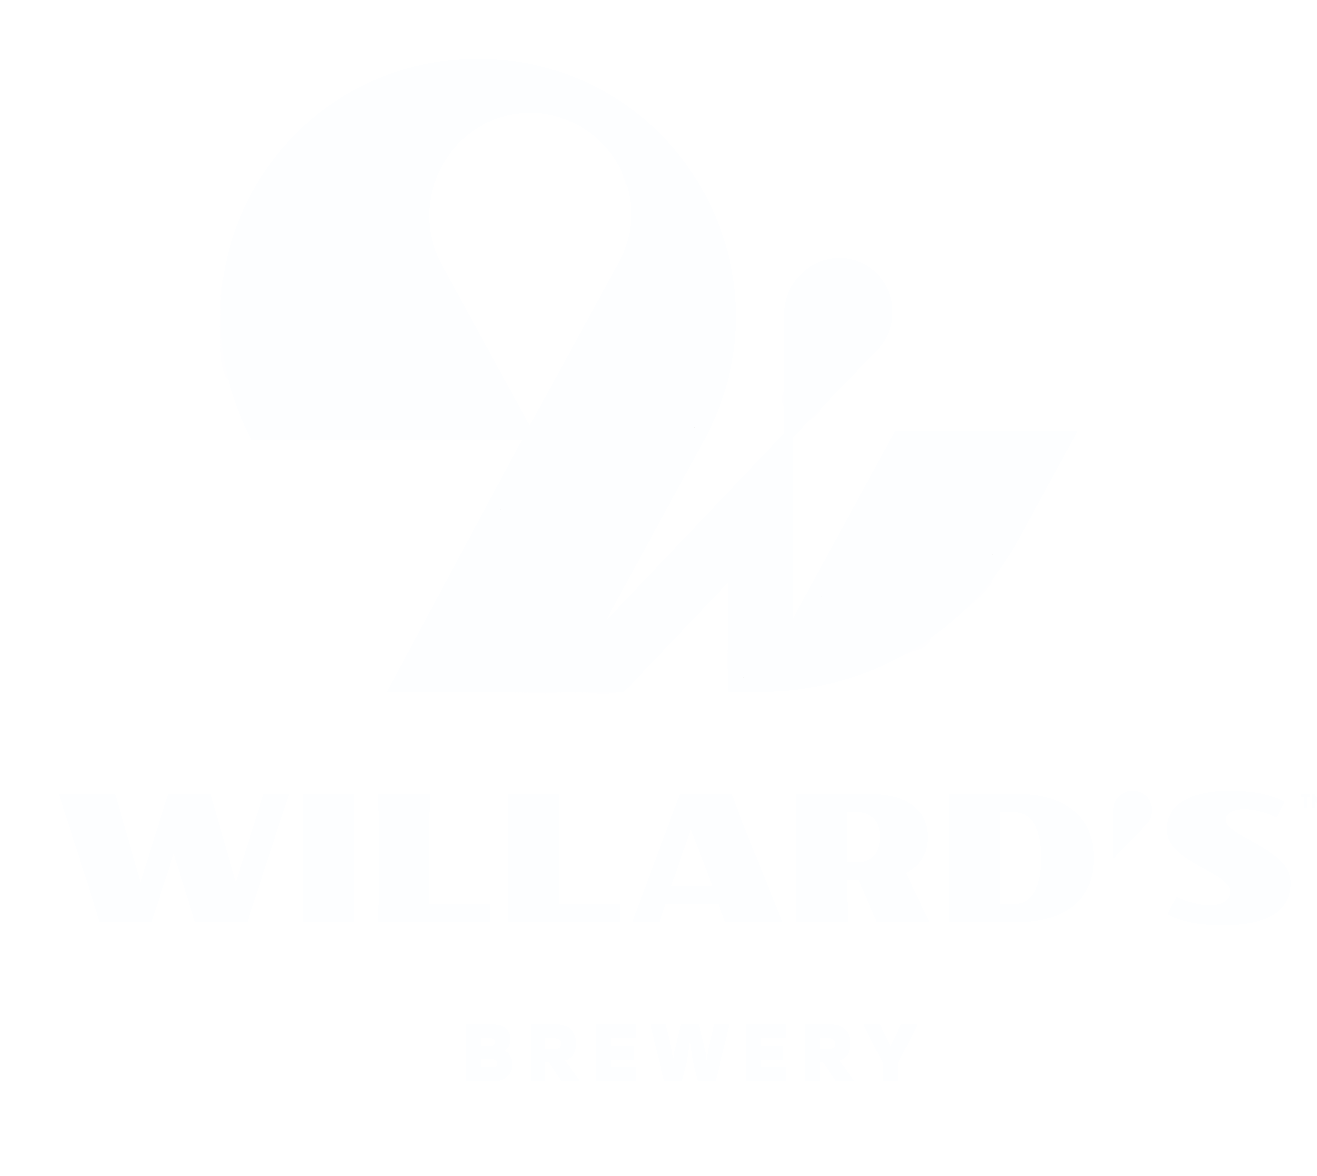 Willard's Brewery